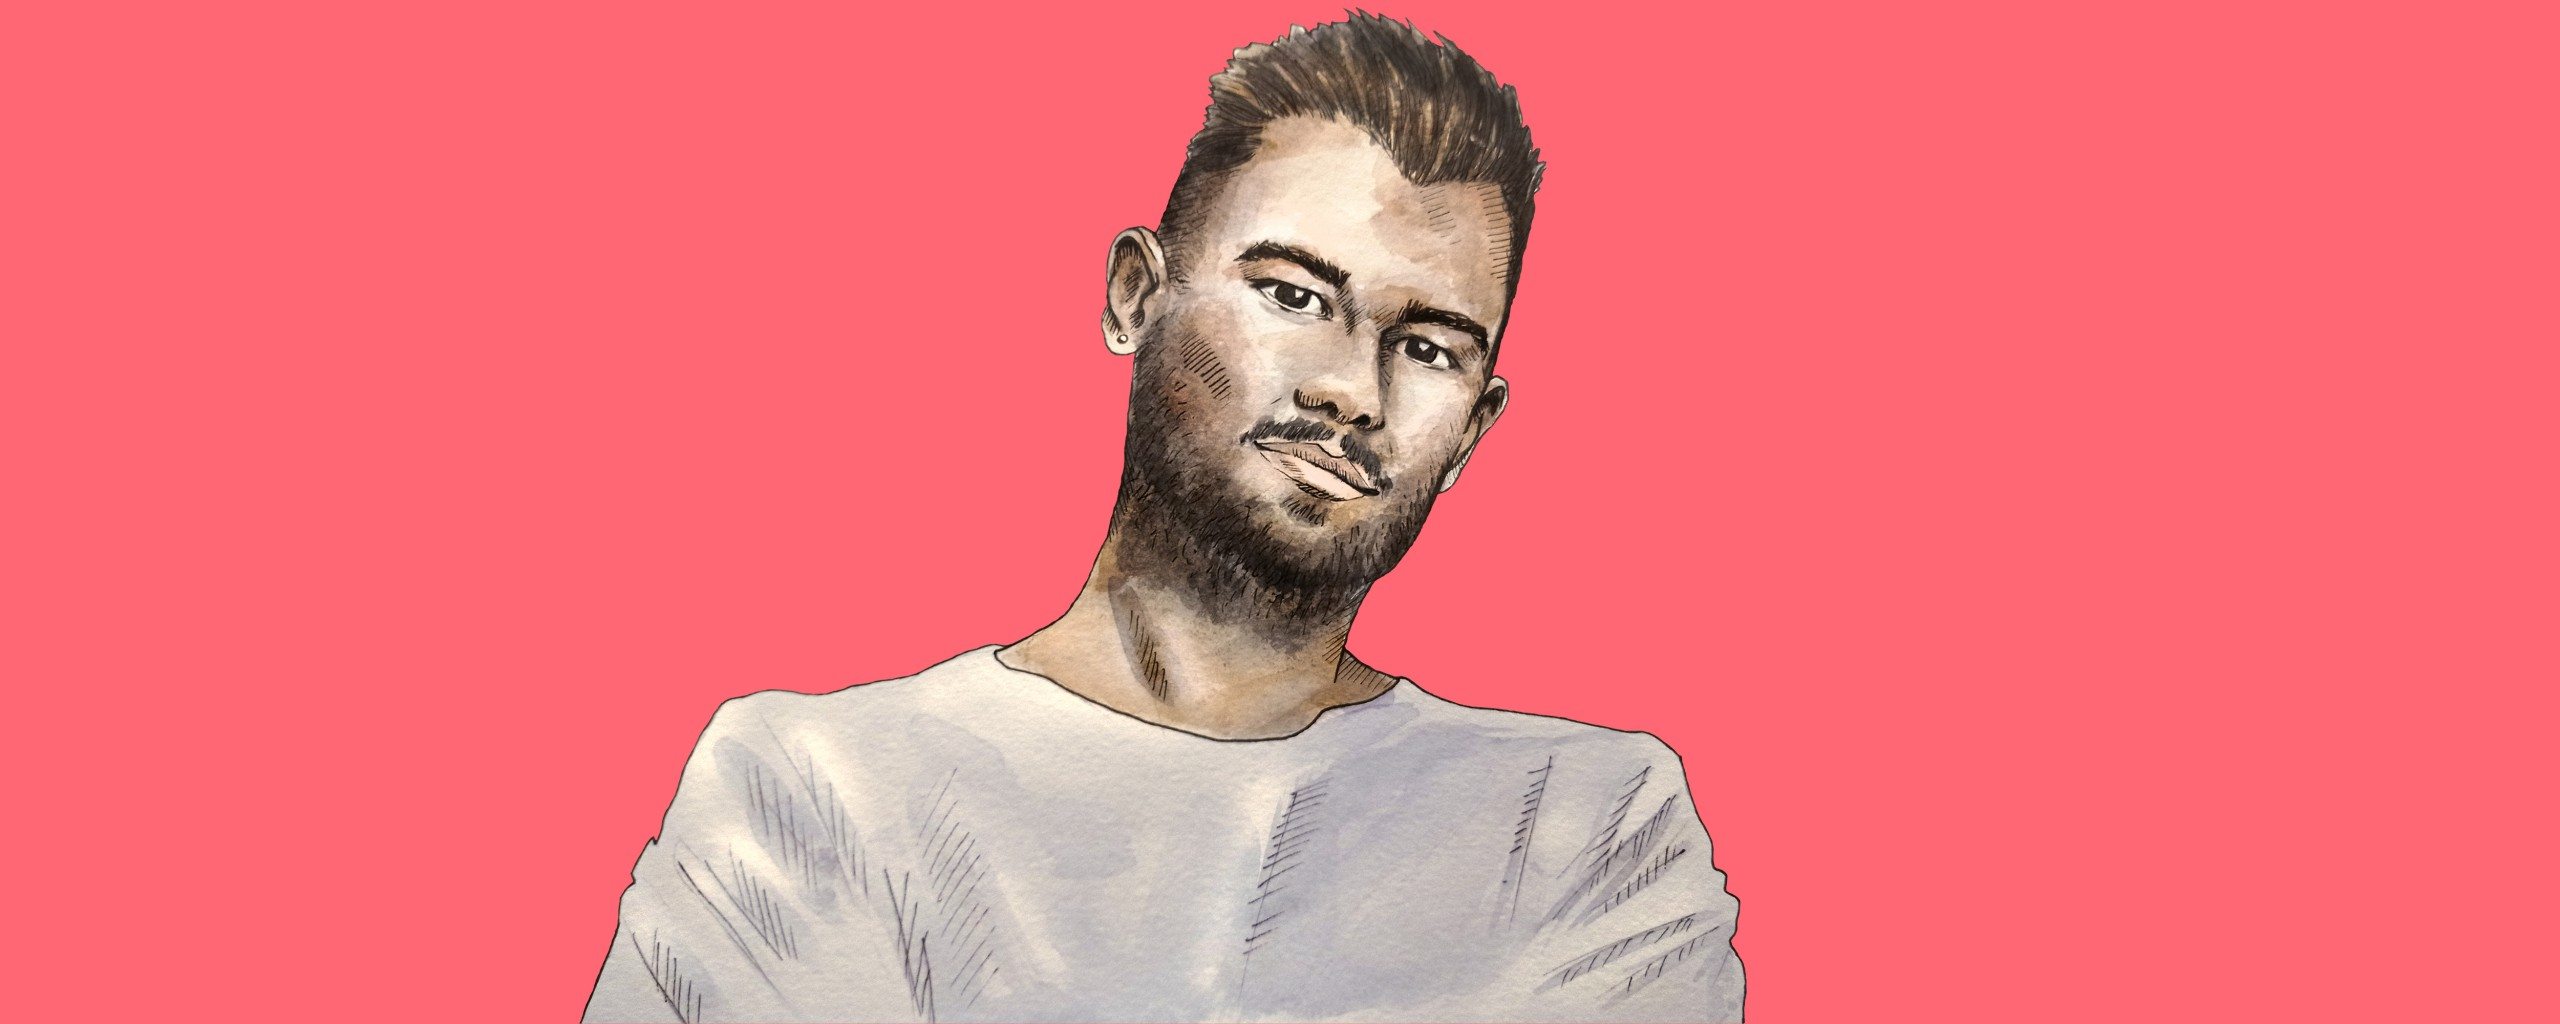 Illustrated portrait of our creative crush.